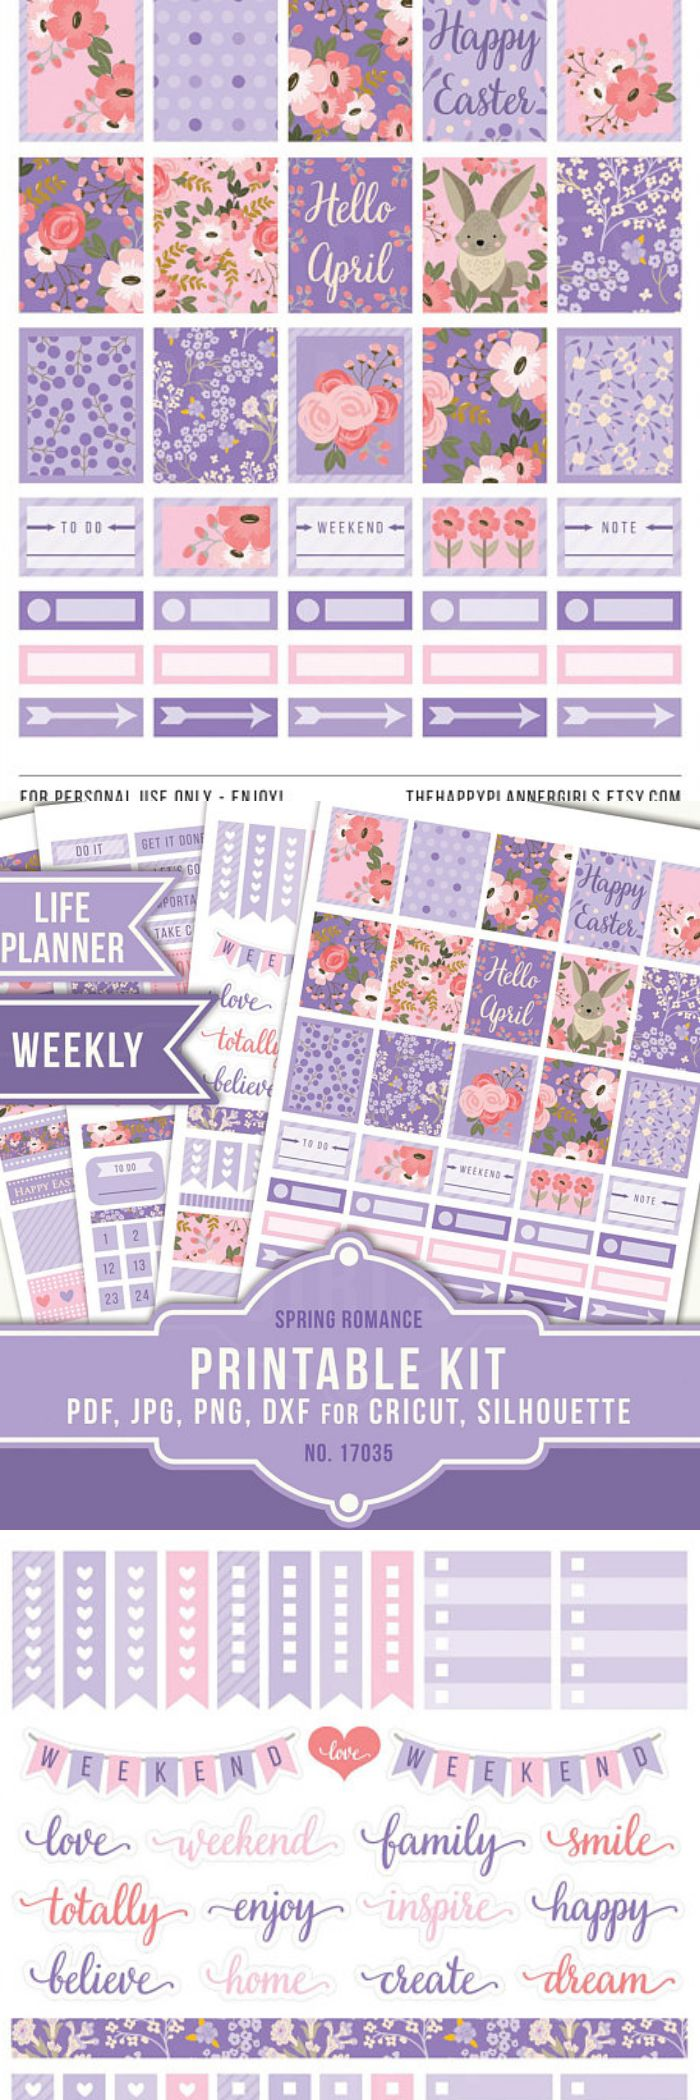 These PRINTABLE planner stickers are perfect for the new 2018 Erin Condren Life Planner VERTICAL but of course the stickers can be used in other type of planners as well. Save money and make your planner beautiful wuth printables! April Planner Stickers, Erin Condren April Sticker Kit, Life Planner Vertical, April Weekly Planner Stickers, Easter Planner #eclifeplanner #stickers #bulletjournals #ad #printable #planner #printables #jpg #cutfile #etsy